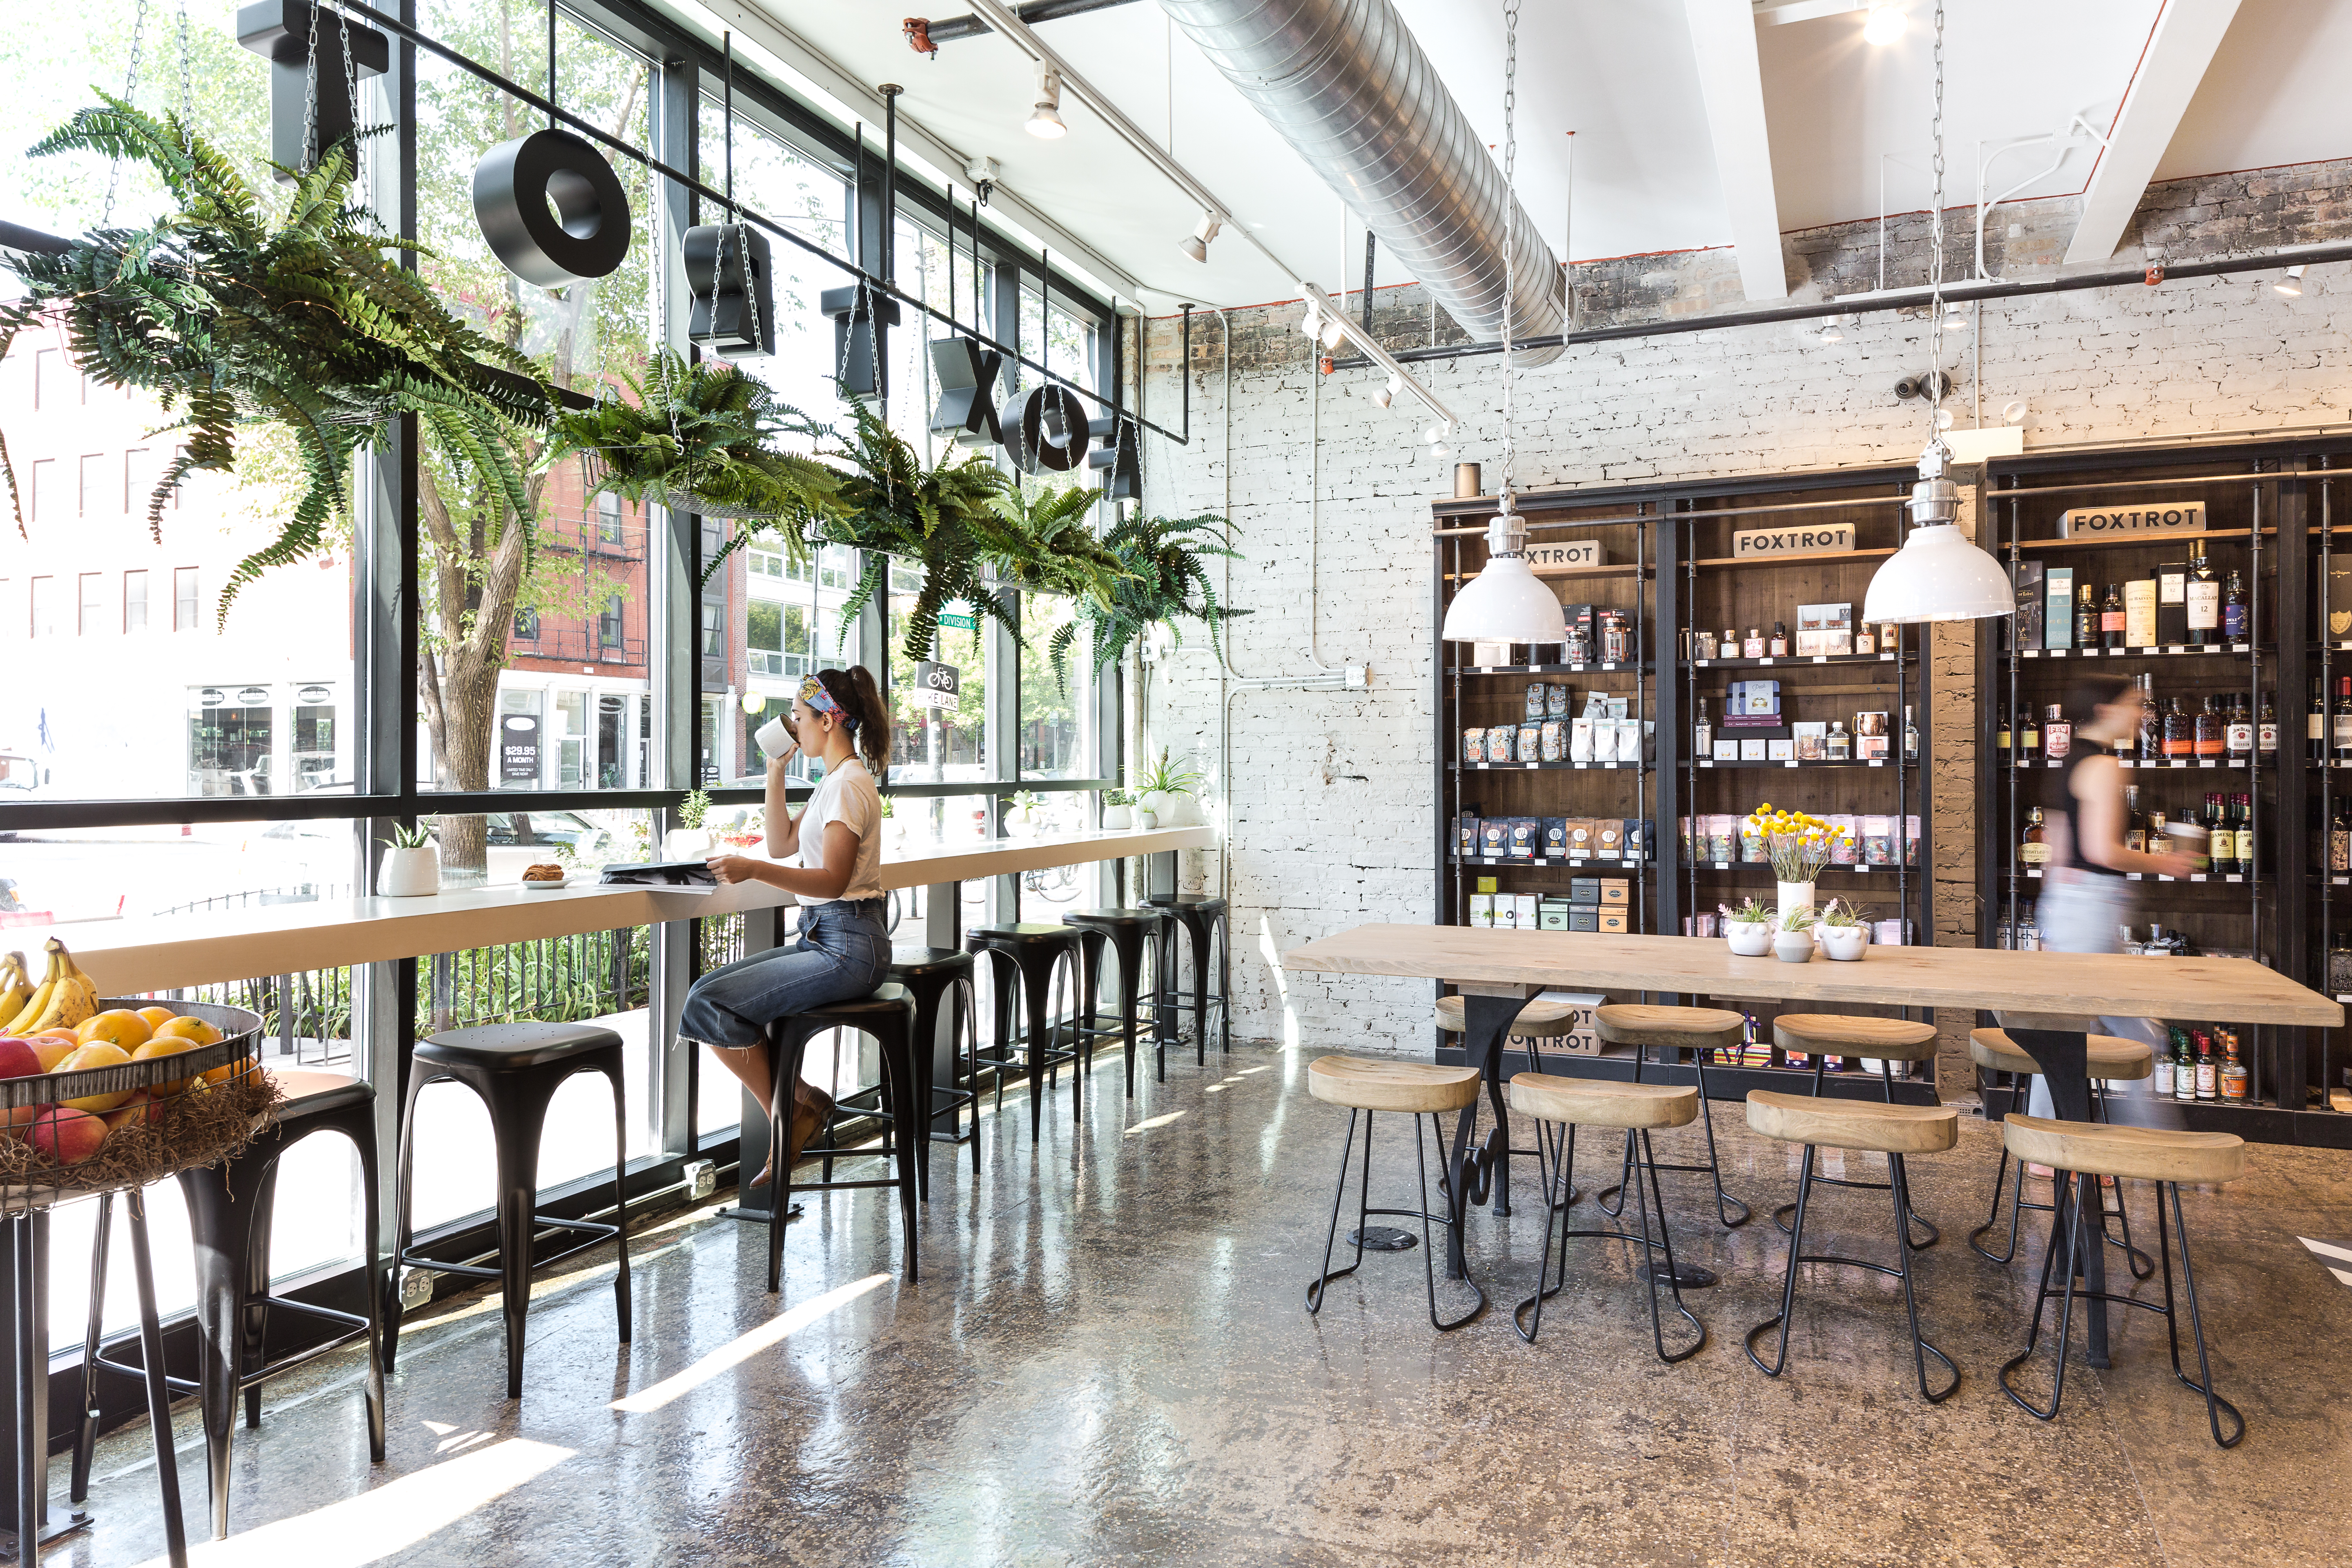 Inside one of Foxtrot's convenience store cafes